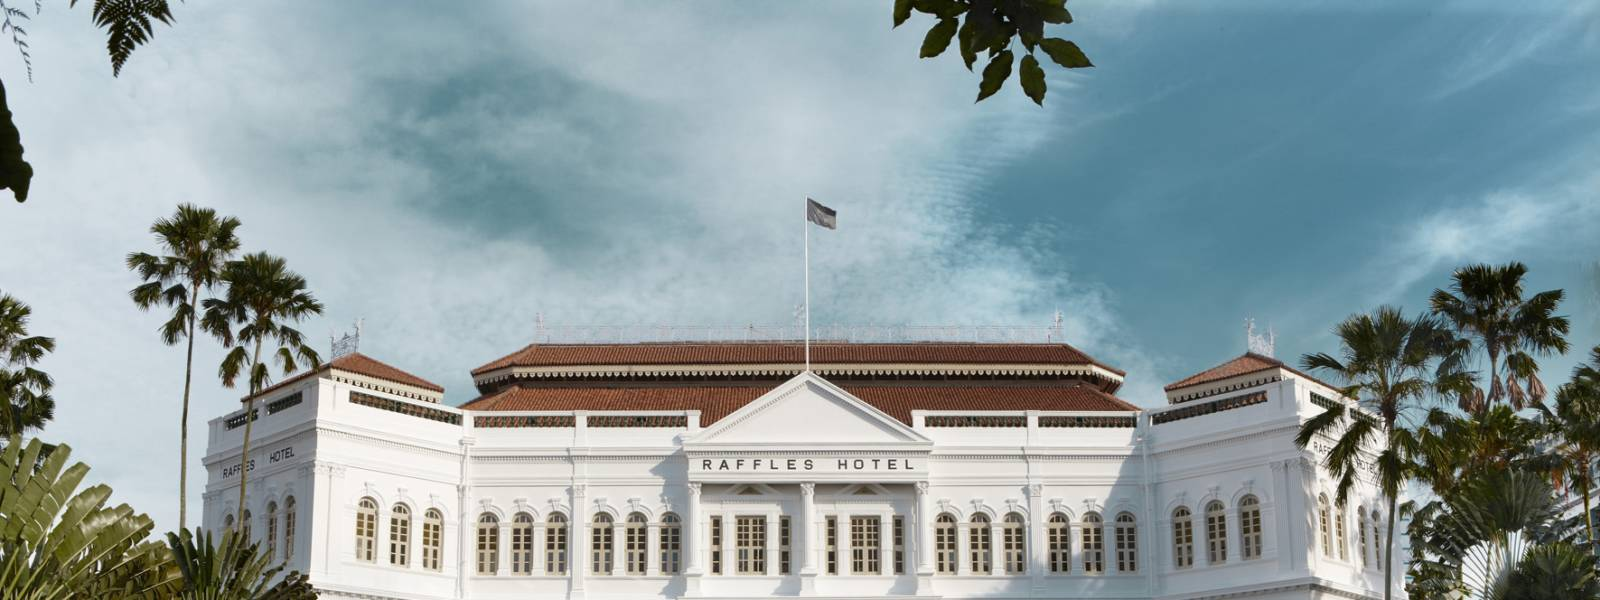 a large white building with trees in the background with Raffles Hotel in the background